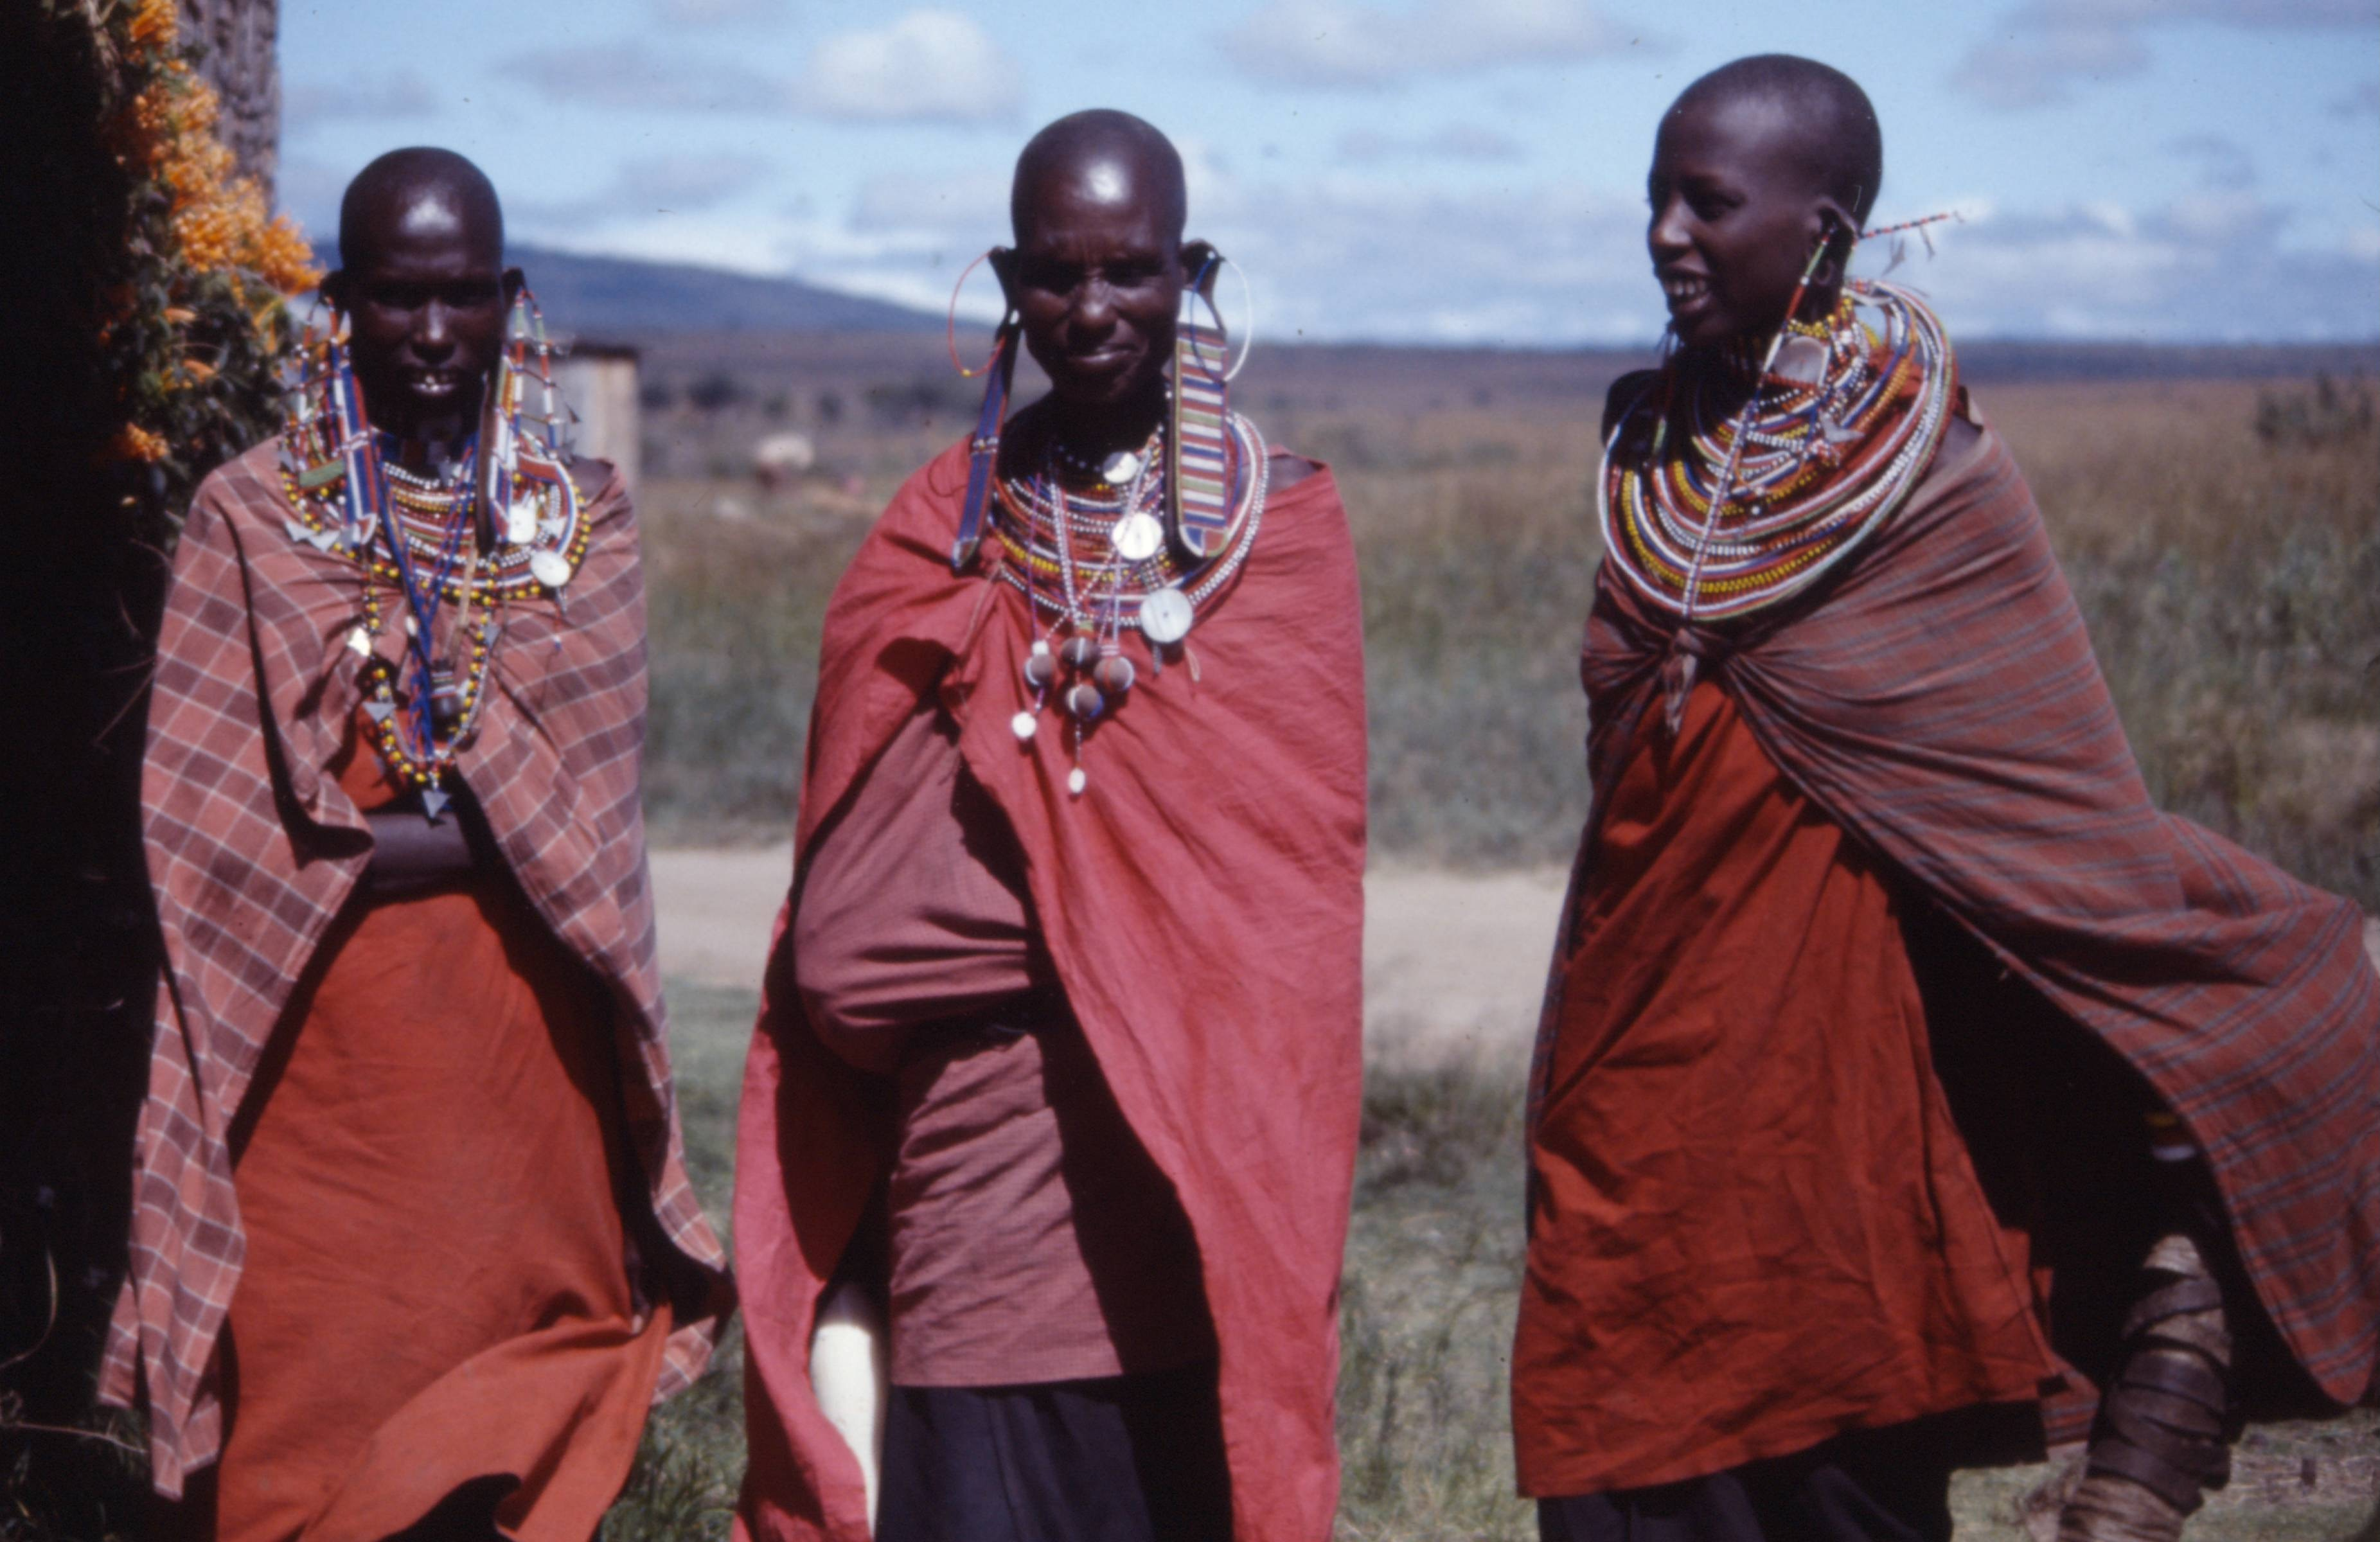 Maasai tribal warriors standing in the Mara